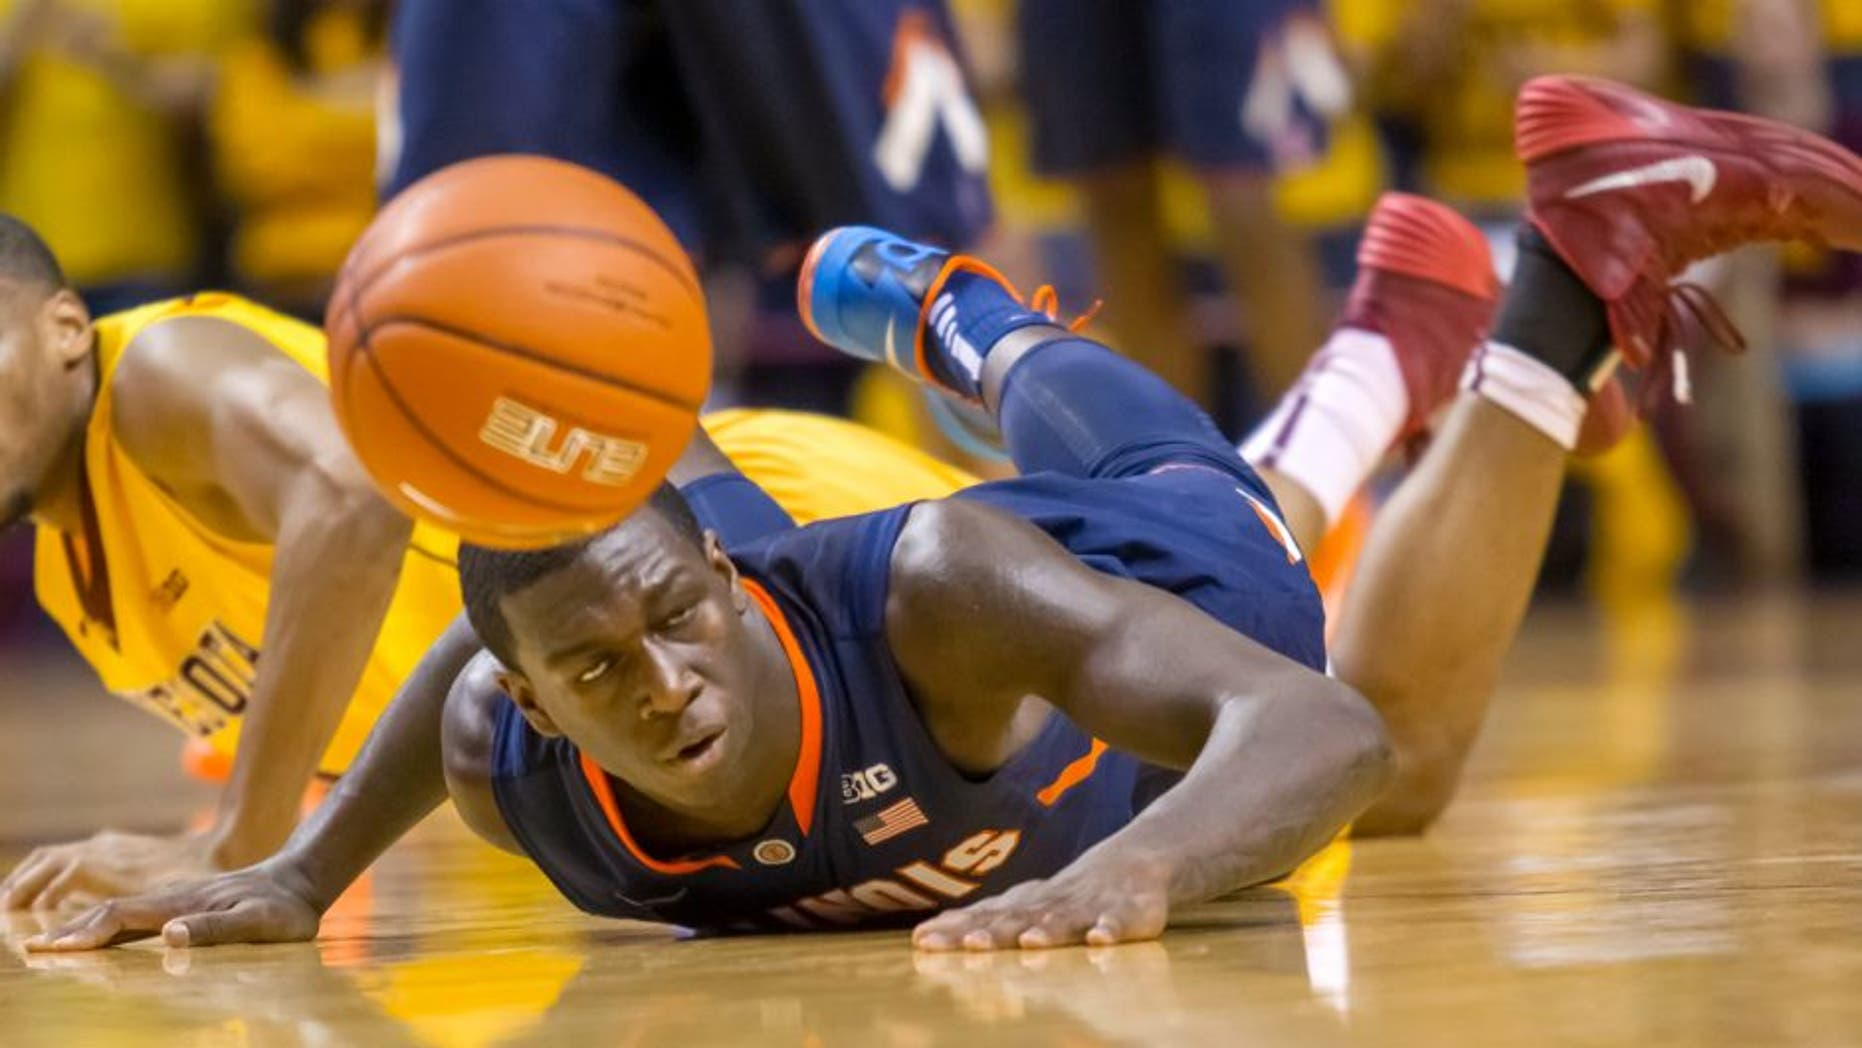 Feb 19, 2014; Minneapolis, MN, USA; Illinois Fighting Illini forward Darius Paul (35) dives for a loose ball in the first half against the Minnesota Gophers at Williams Arena. Mandatory Credit: Brad Rempel-USA TODAY Sports